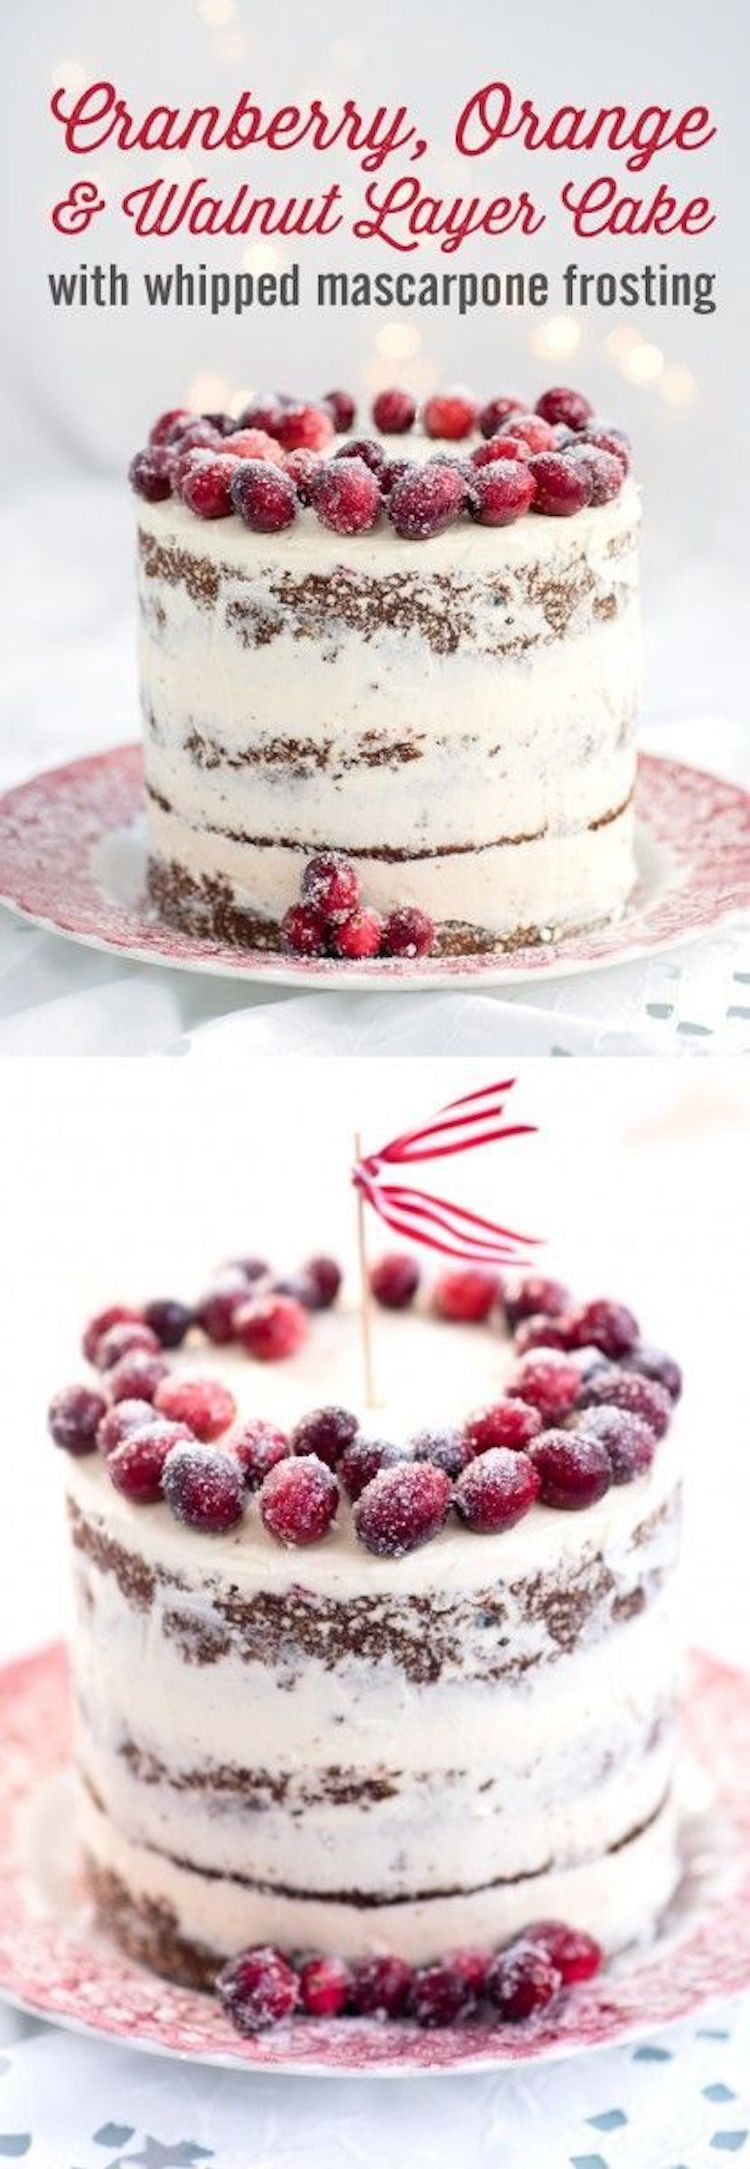 Festive Cranberry & Orange Christmas Cake